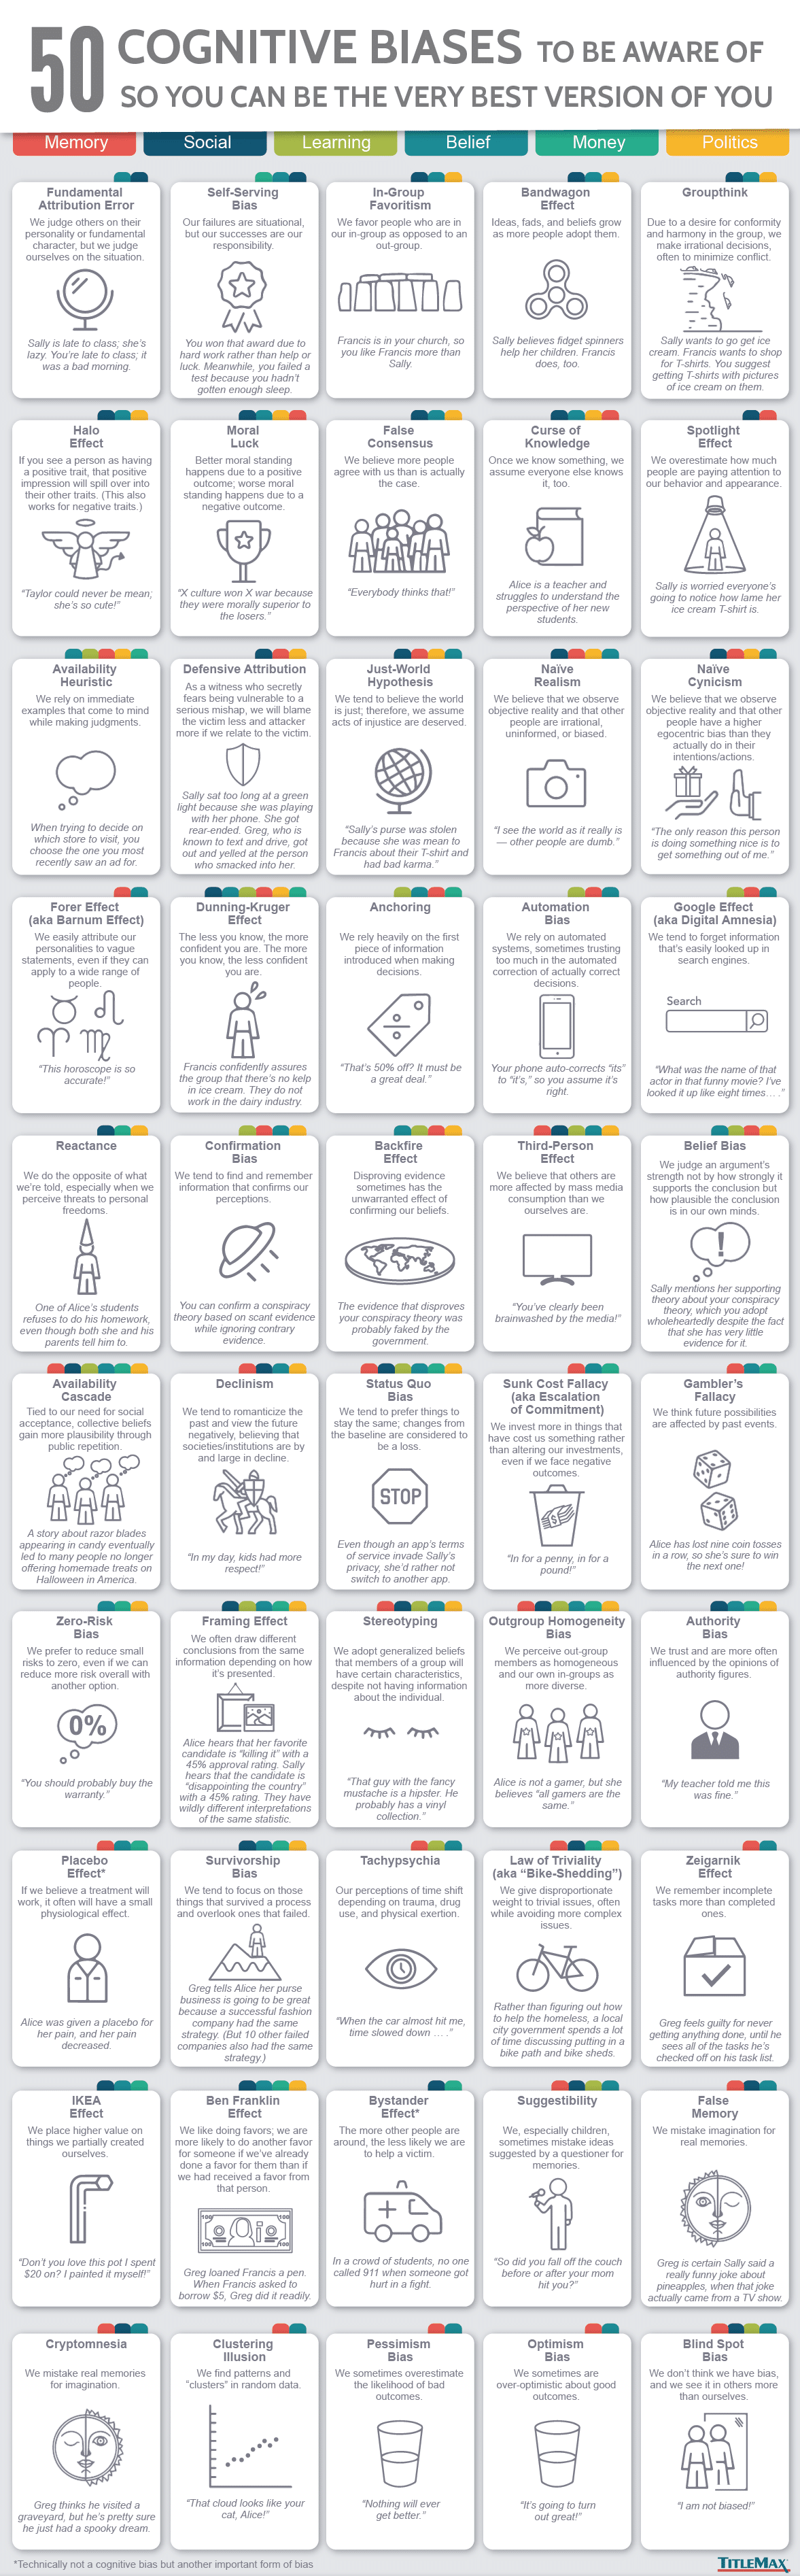 Infographic 50 Cognitive Biases to bee aware of. Source: TitleMax